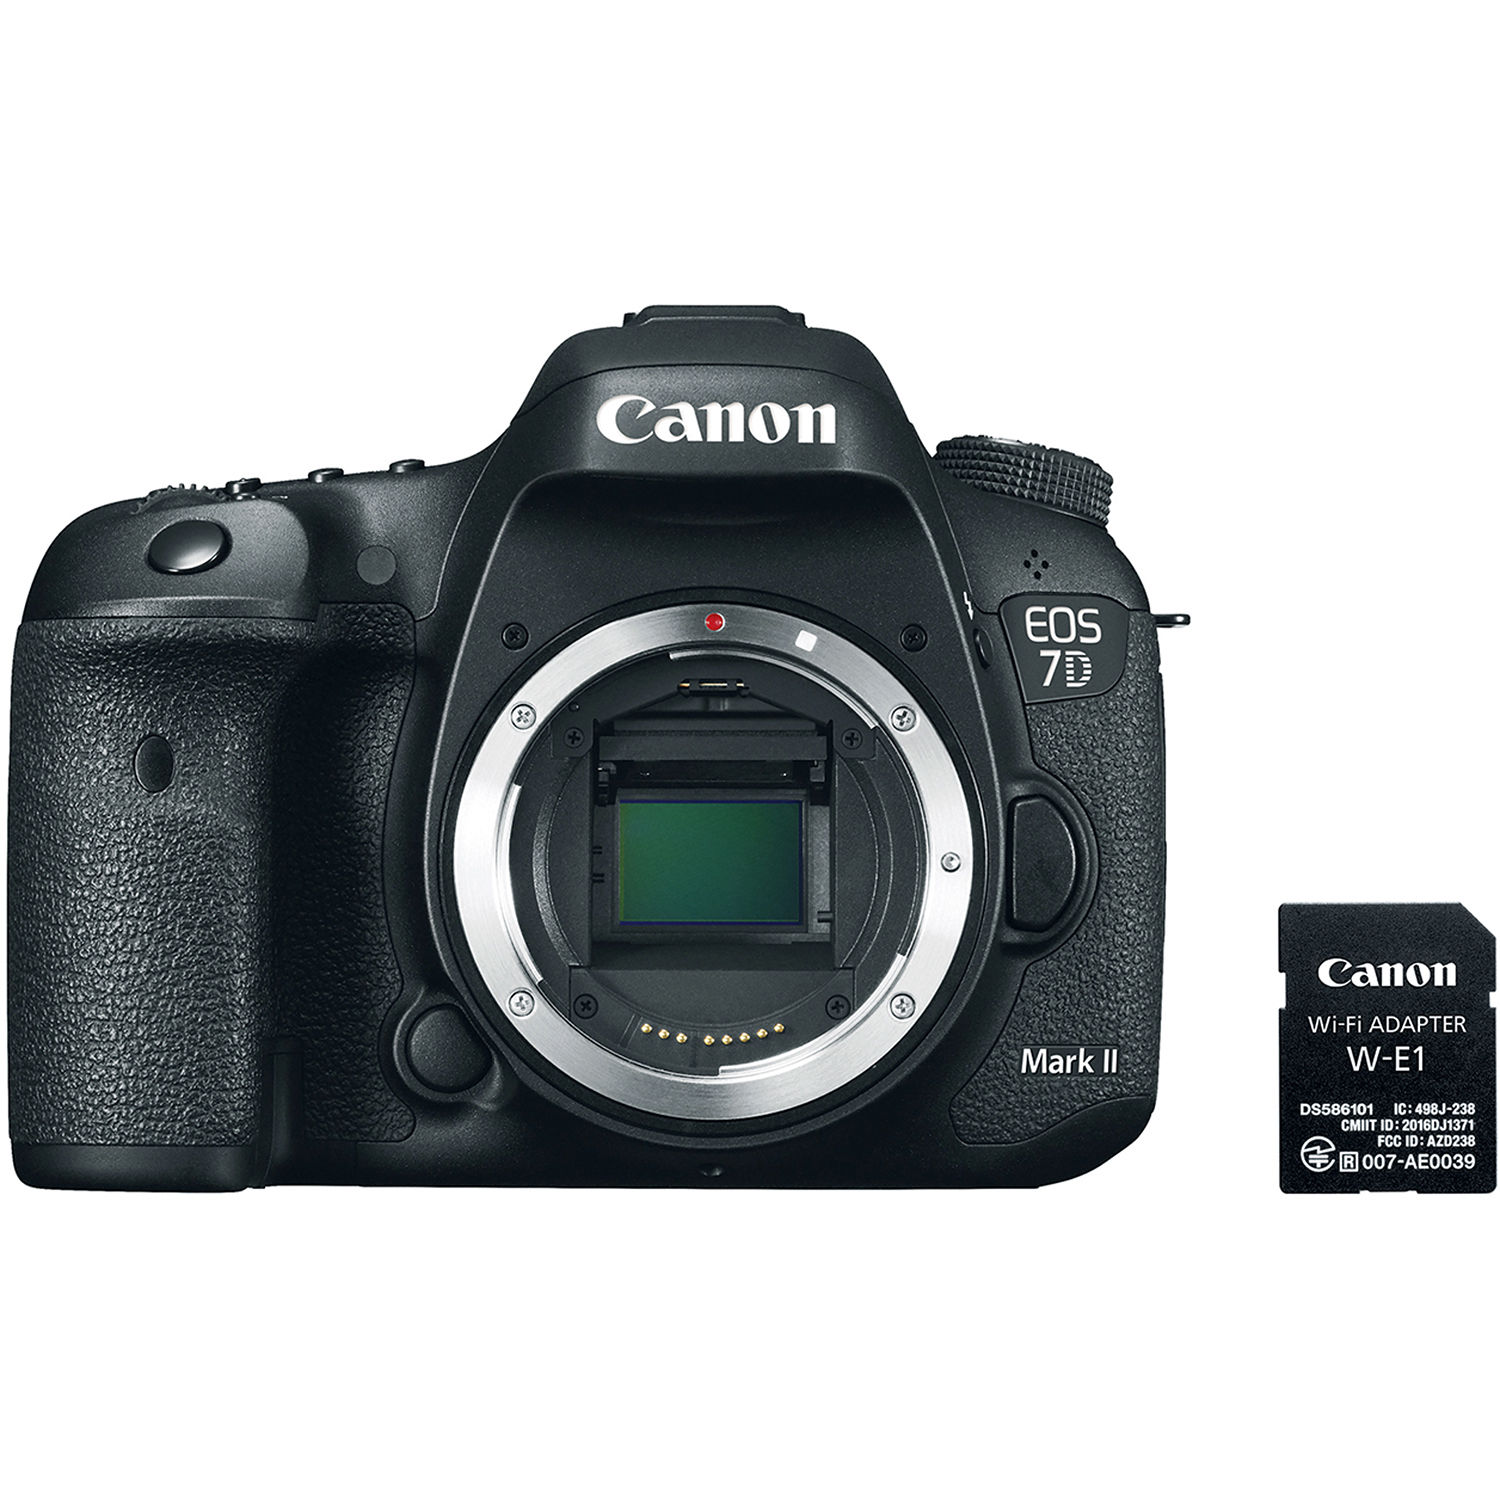 Canon EOS 7D Mark II + Wi-Fi Adapter W-E1